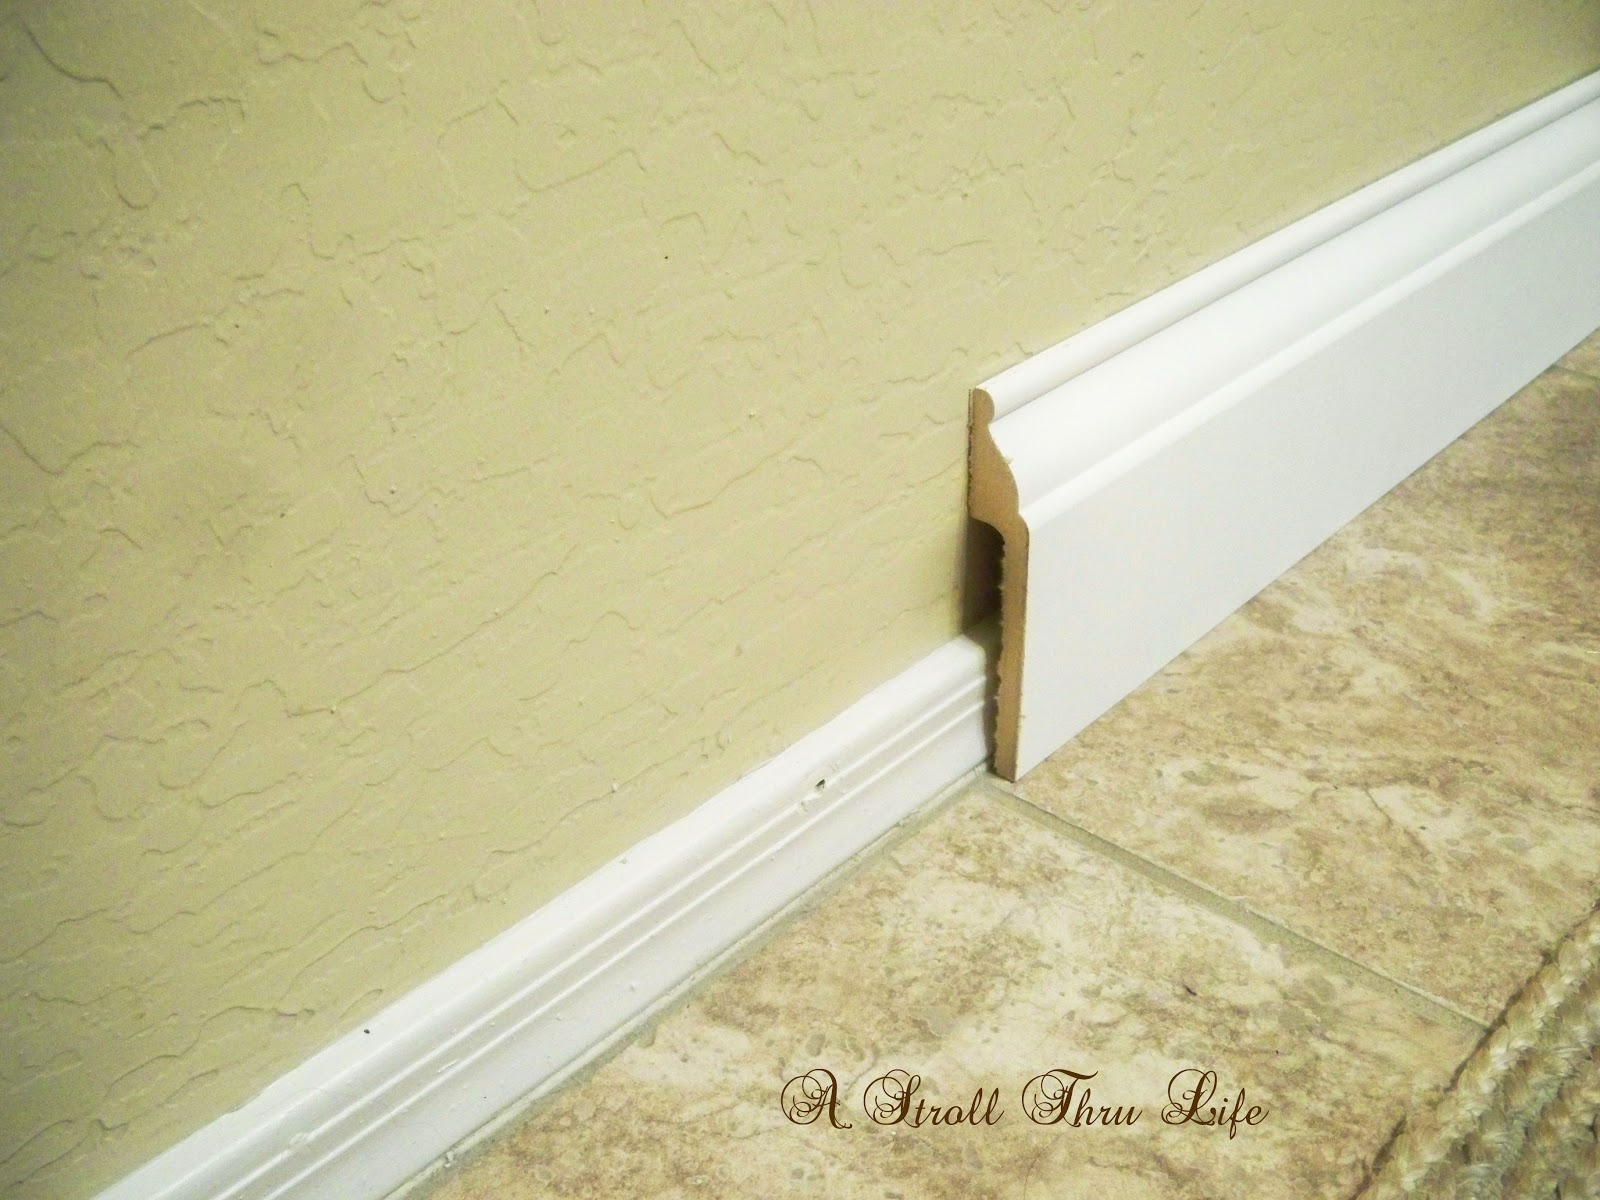 How Wide Is A Door Frame : A stroll thru life install wide baseboard molding over